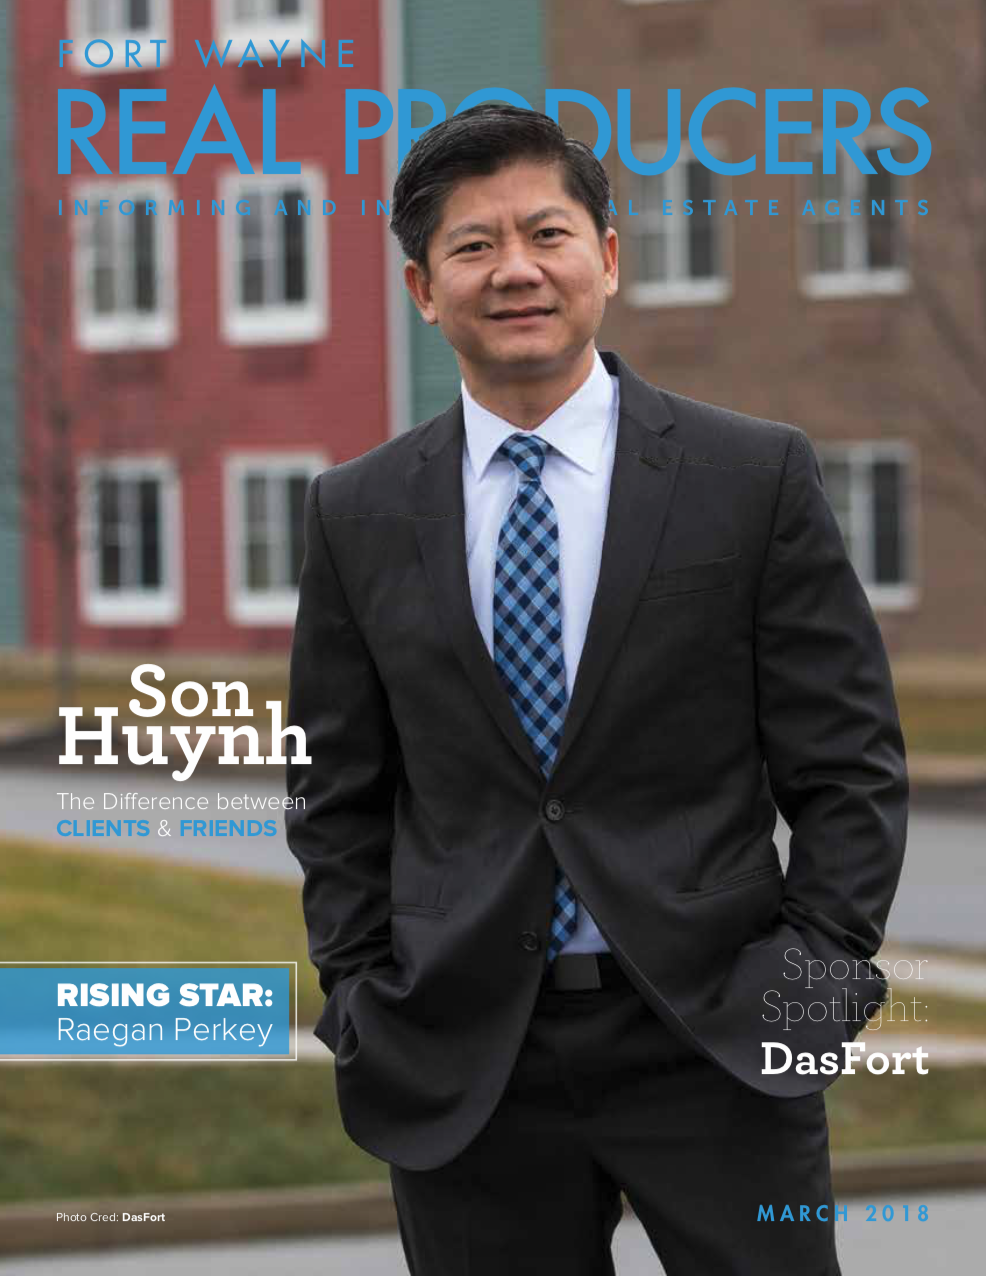 Son Huynh, second cover of  Real Producers Fort Wayne